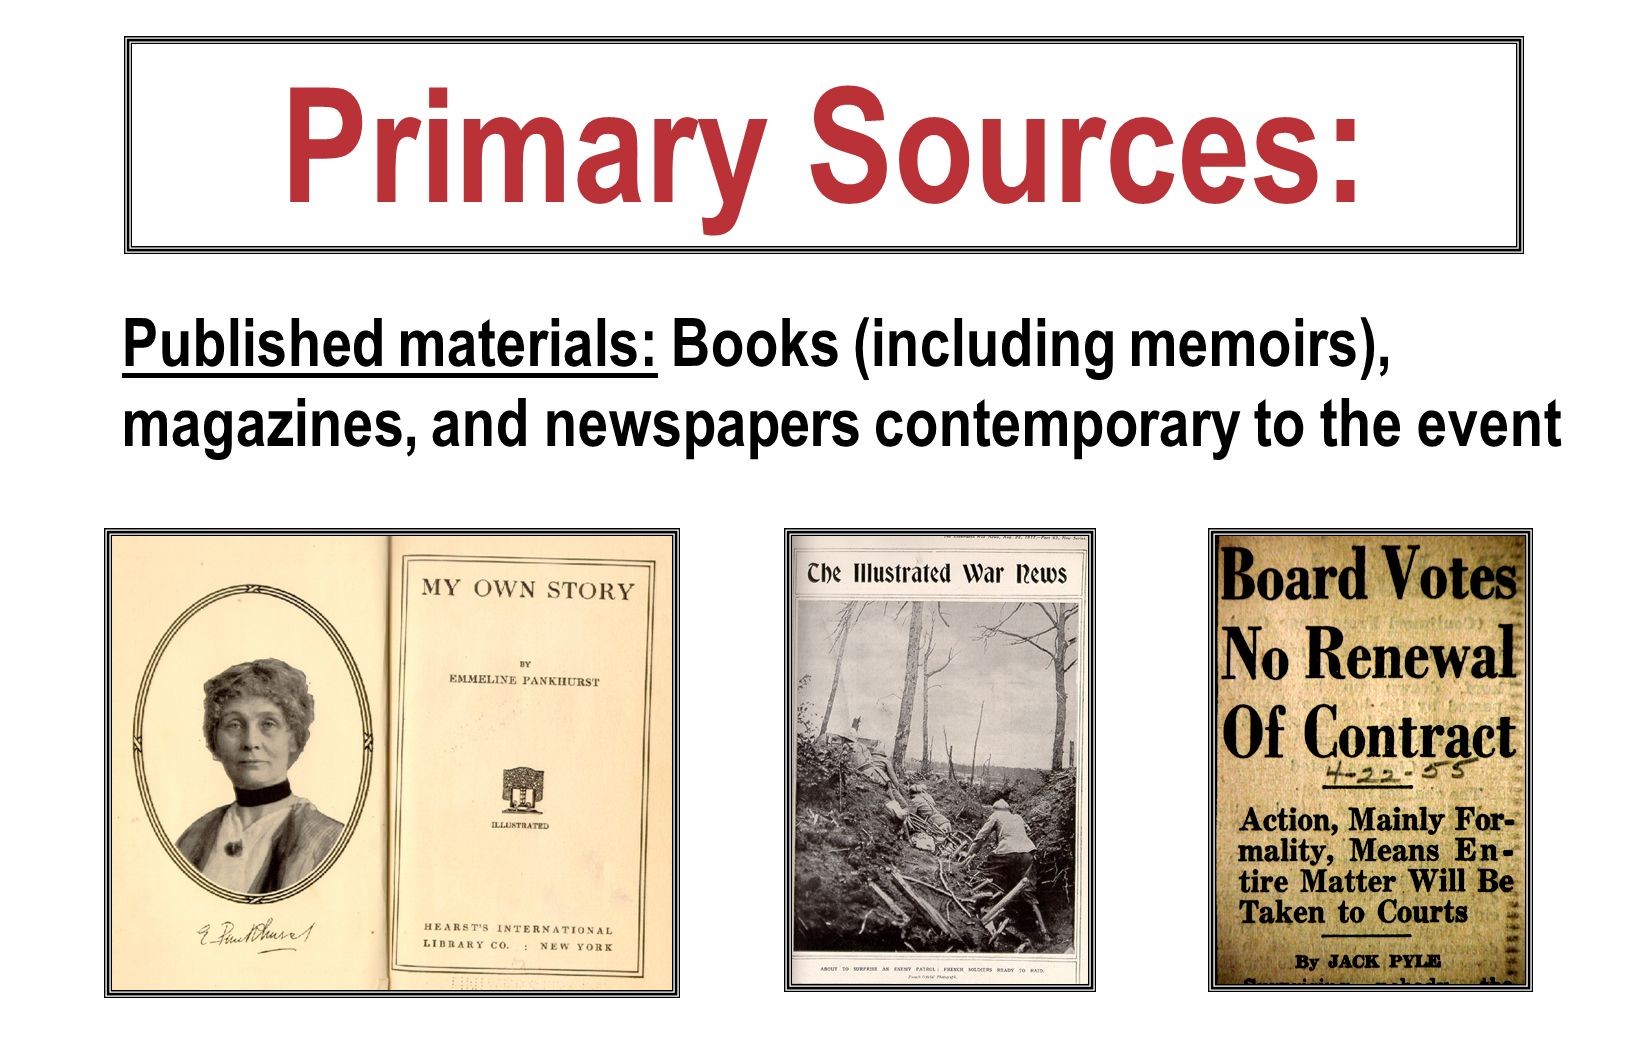 Primary Sources: Published materials: Books (including memoirs), magazines, and newspapers contemporary to the event.